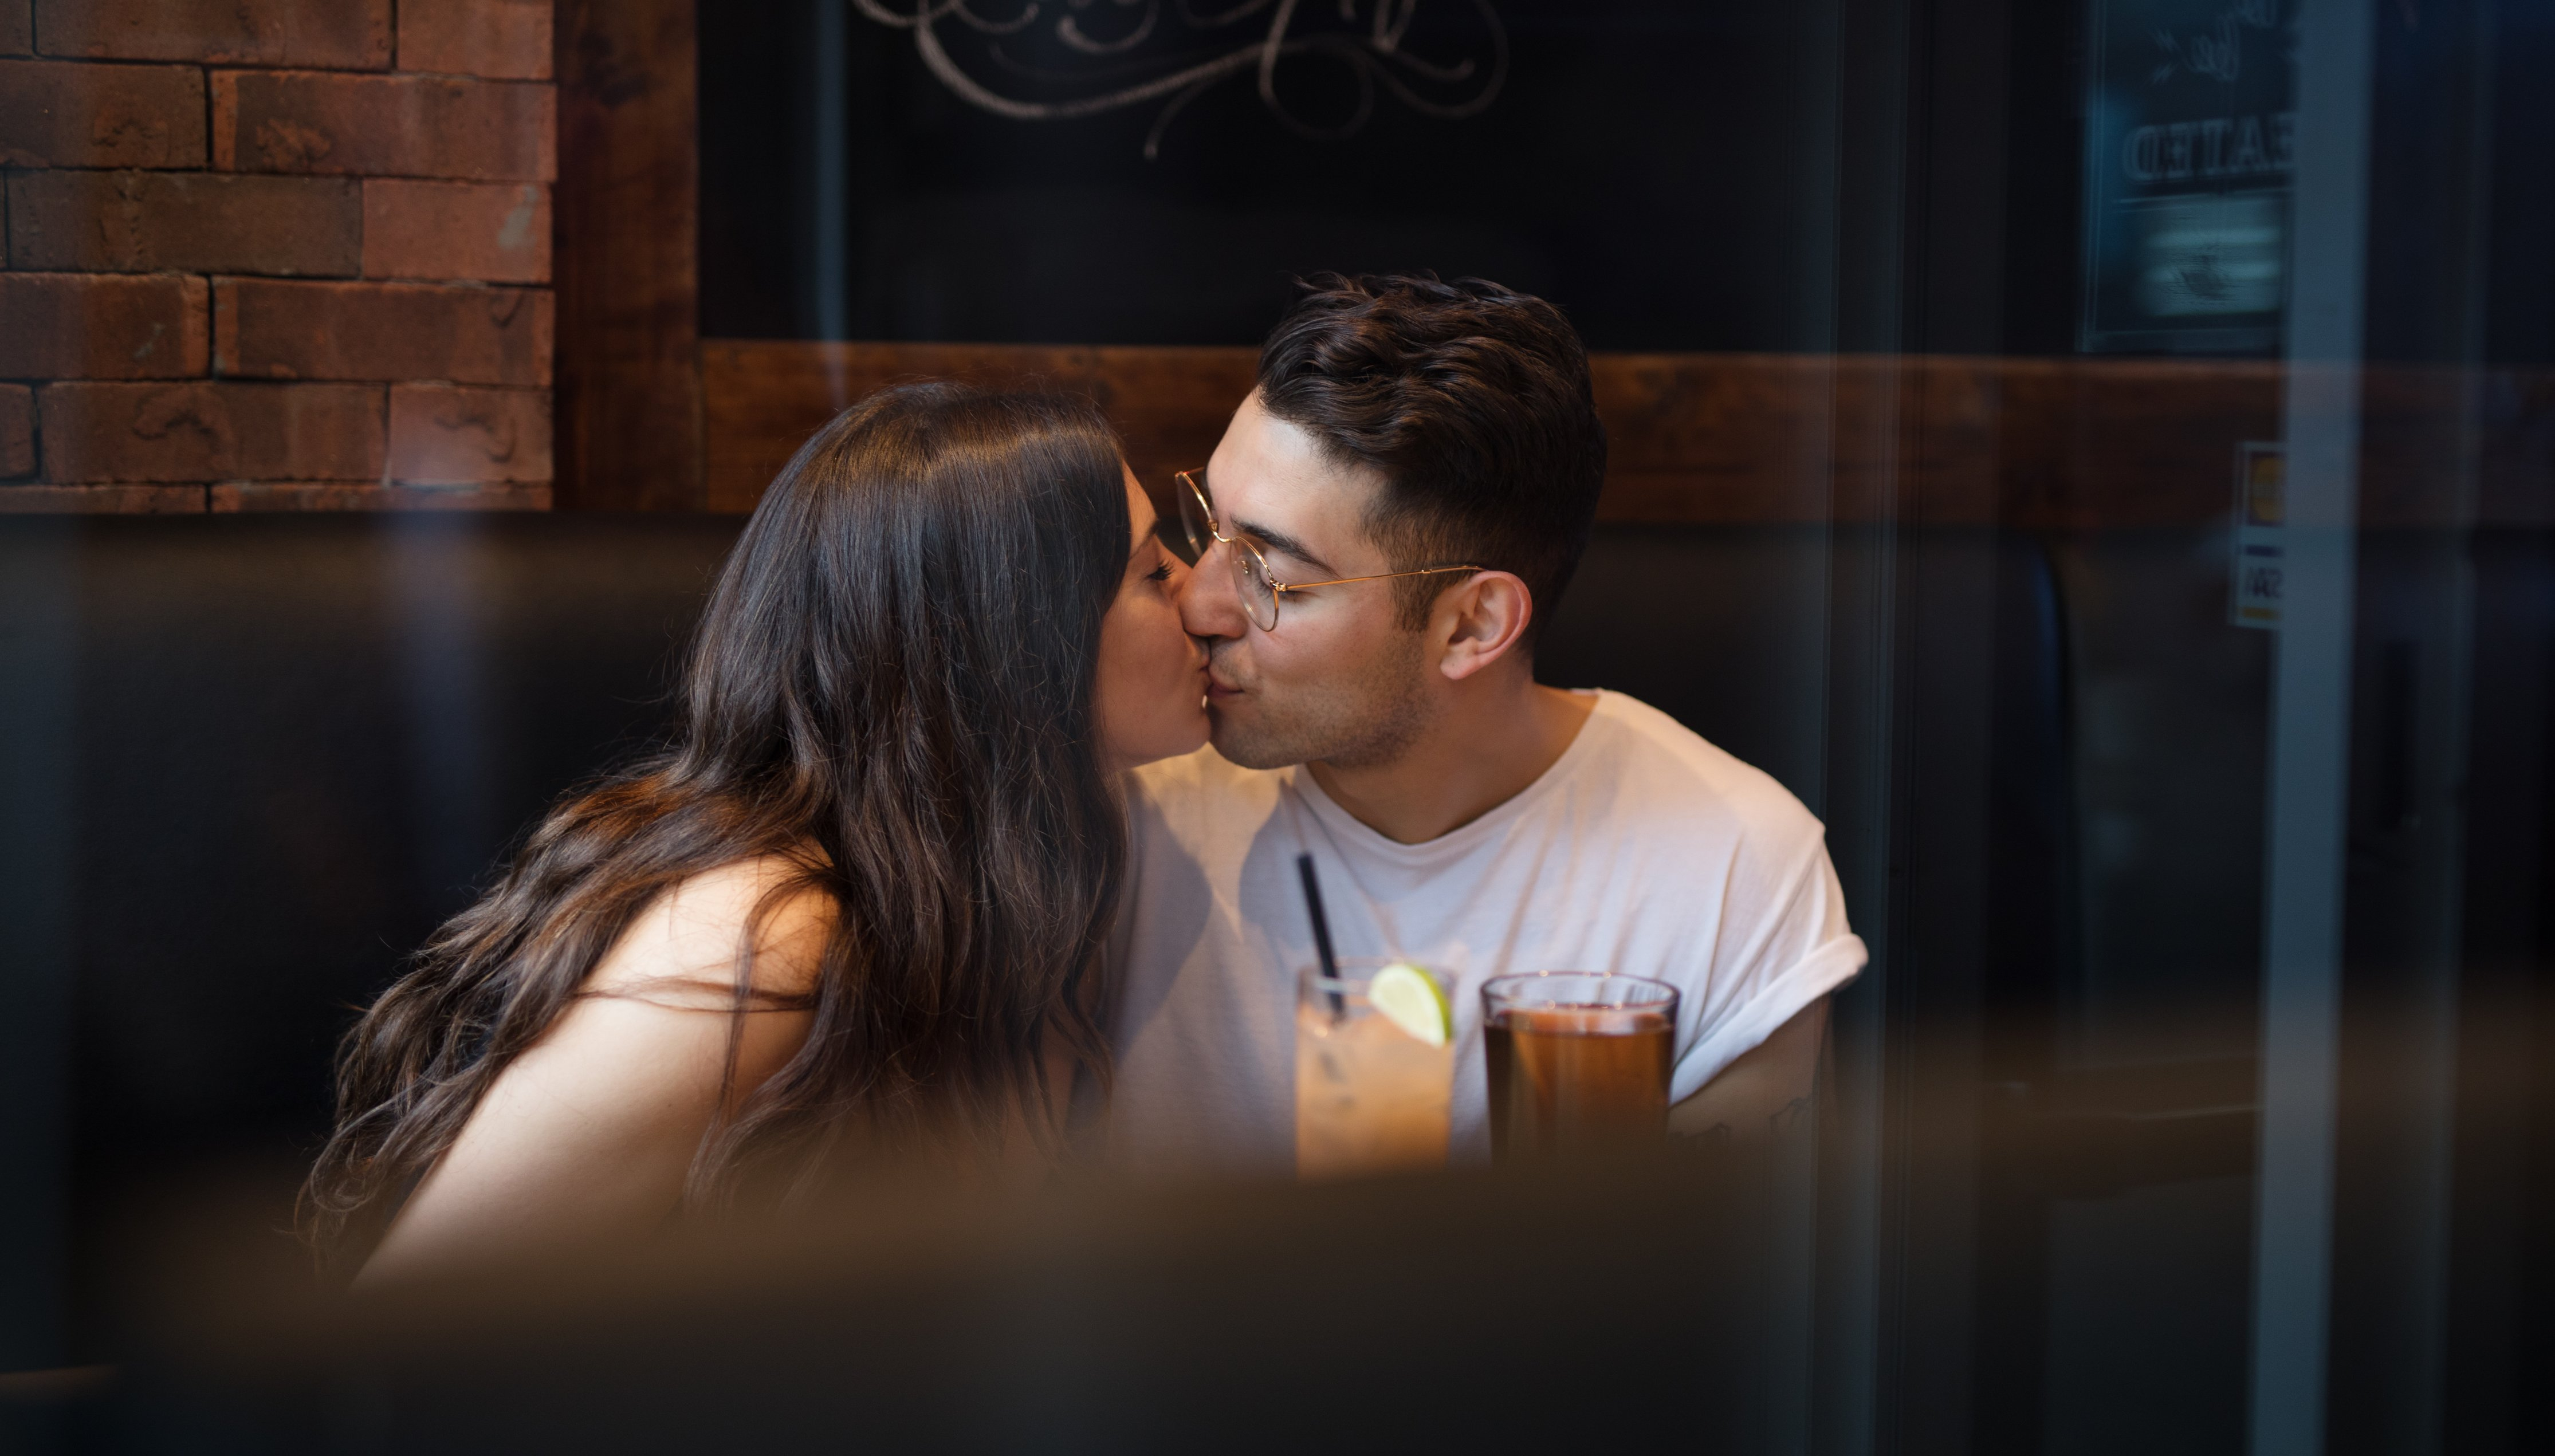 Relationship Court: We've Been Dating for Six Months, Should I Be Worried About This?